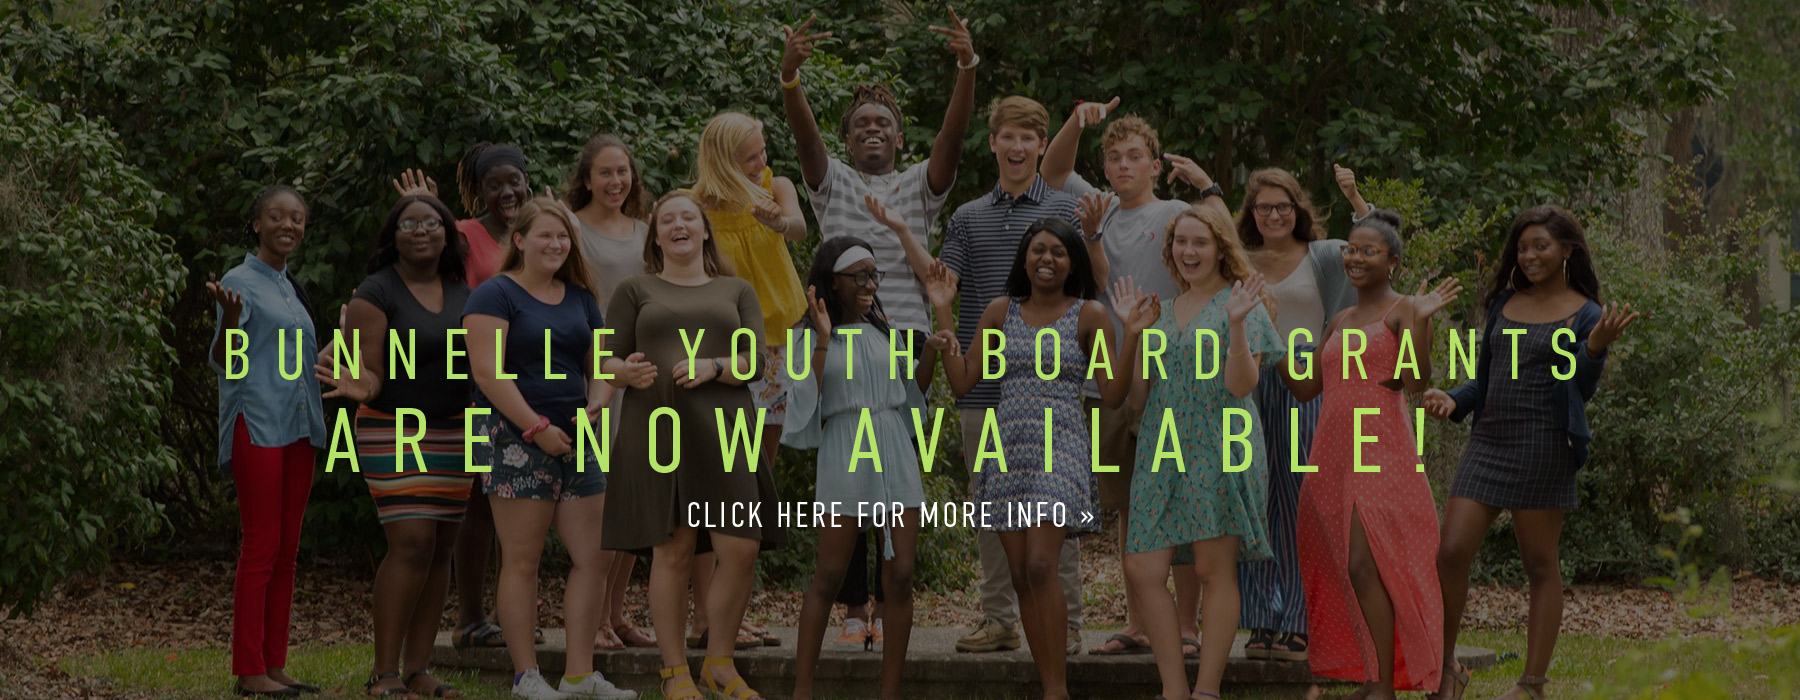 slide-youth-board-grants